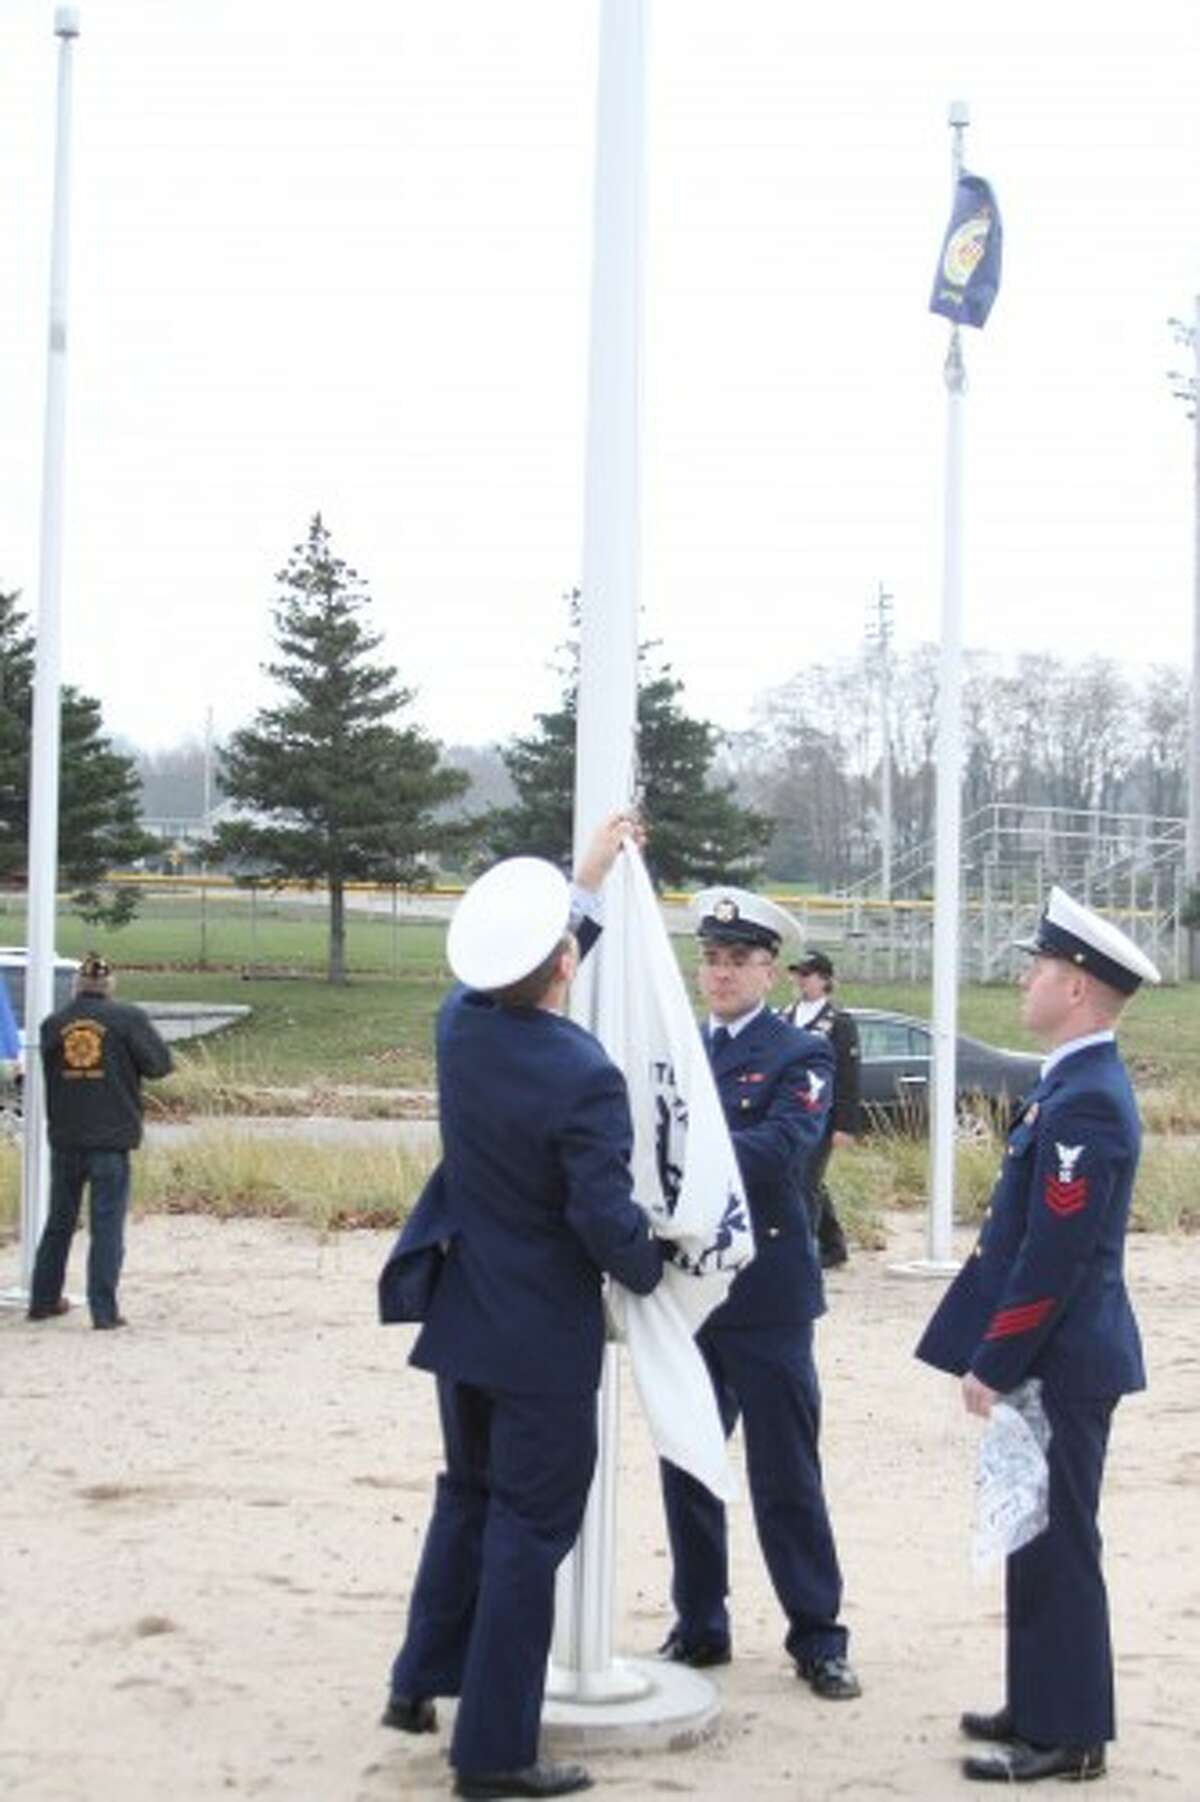 Members of the U.S. Coast Guard lowered their respective flag during a ceremony Wednesday at the First Street beach roundabout. Flags of the other respective branches of the military were also lowered. The American and POW flags at the First Street beach Lions pavilion were lowered in a ceremony as well. All of the flags will be stored at the VFW Walsh Post No. 4499 until the flags are raised again in the spring. (Sean Bradley/News Advocate)